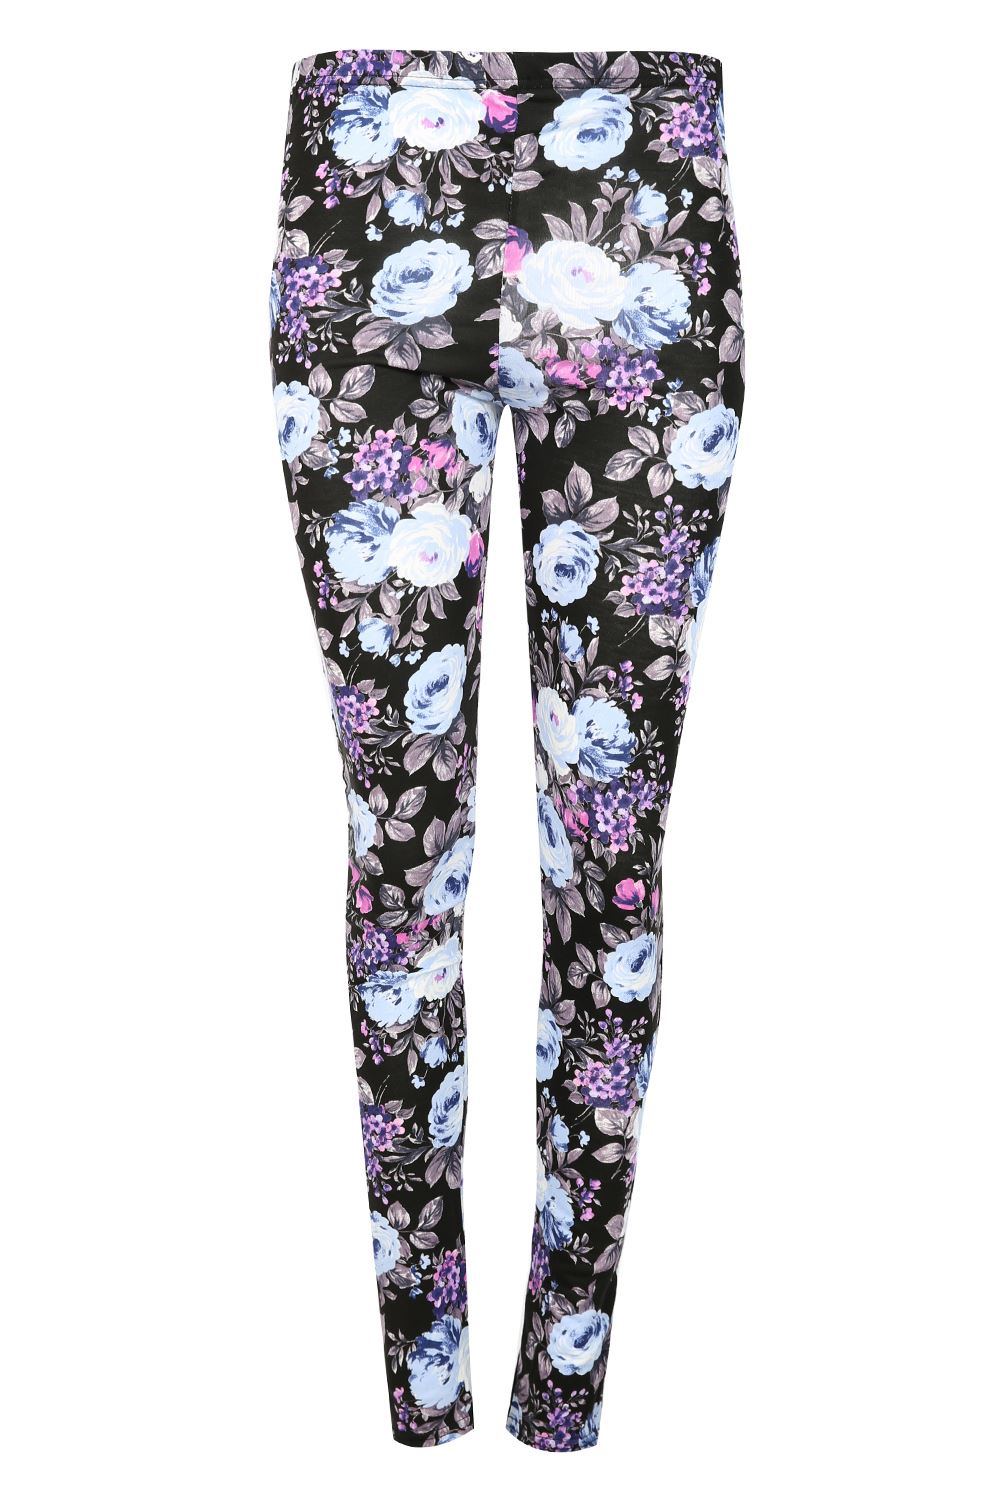 3c618162c642 Kids Leggings Childrens Girls Printed Skinny Fitted Stretchy ...